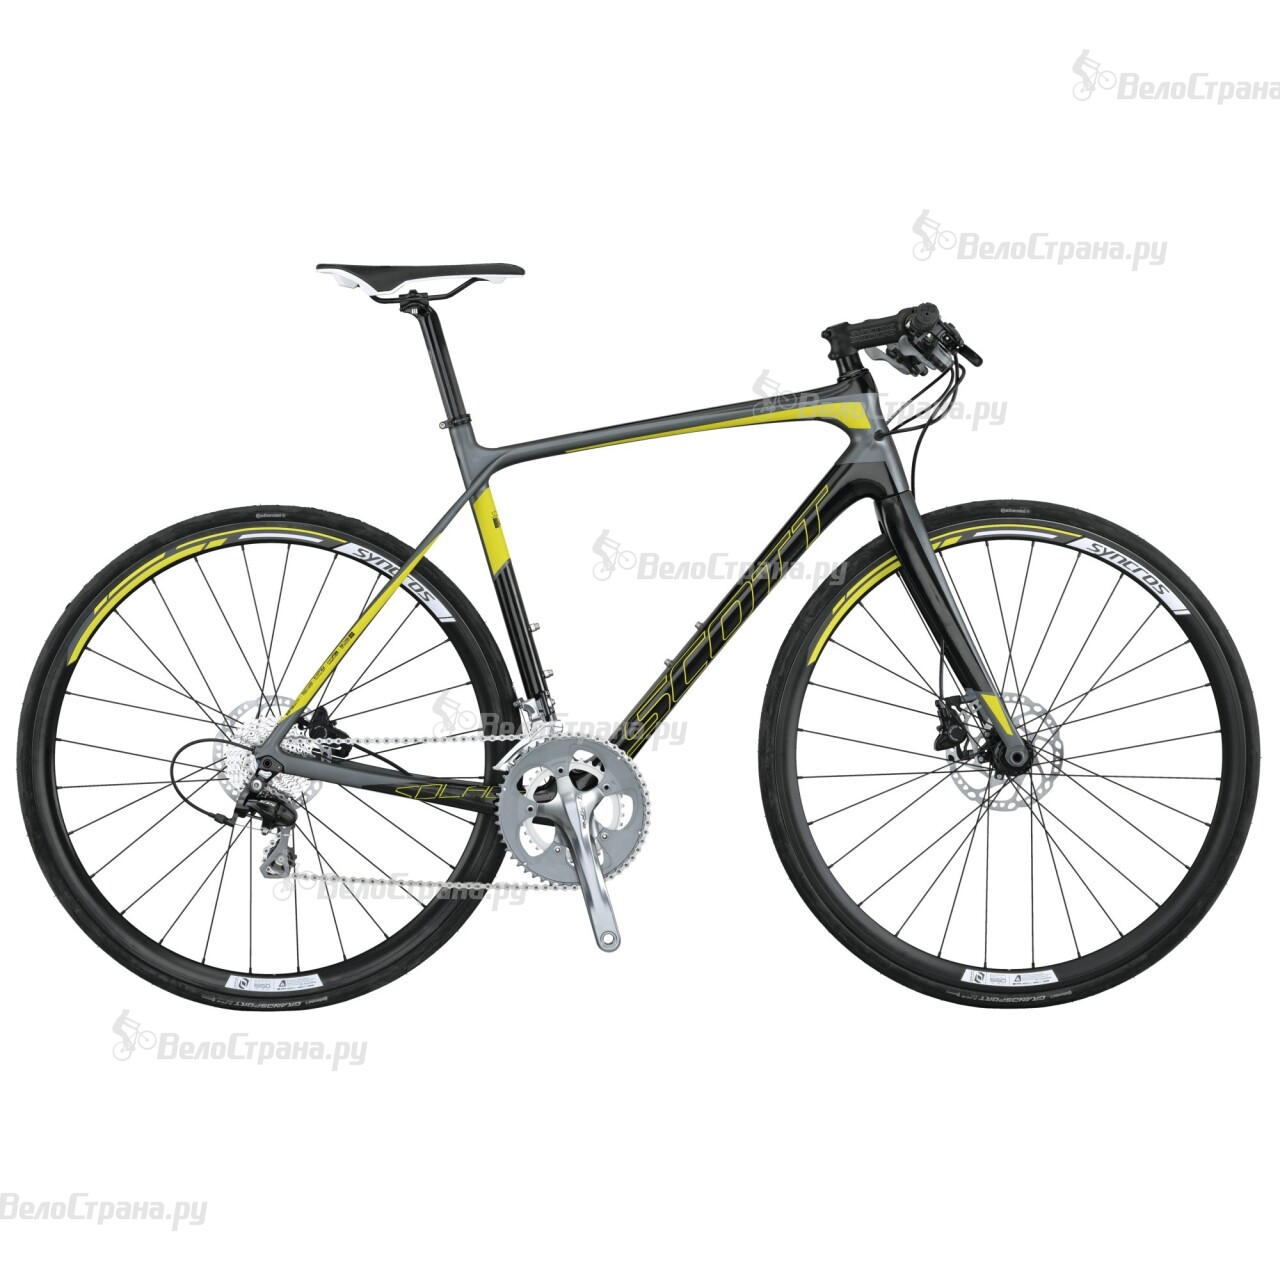 Велосипед Scott Solace 40 FB Disc (2015) велосипед scott solace 30 2015